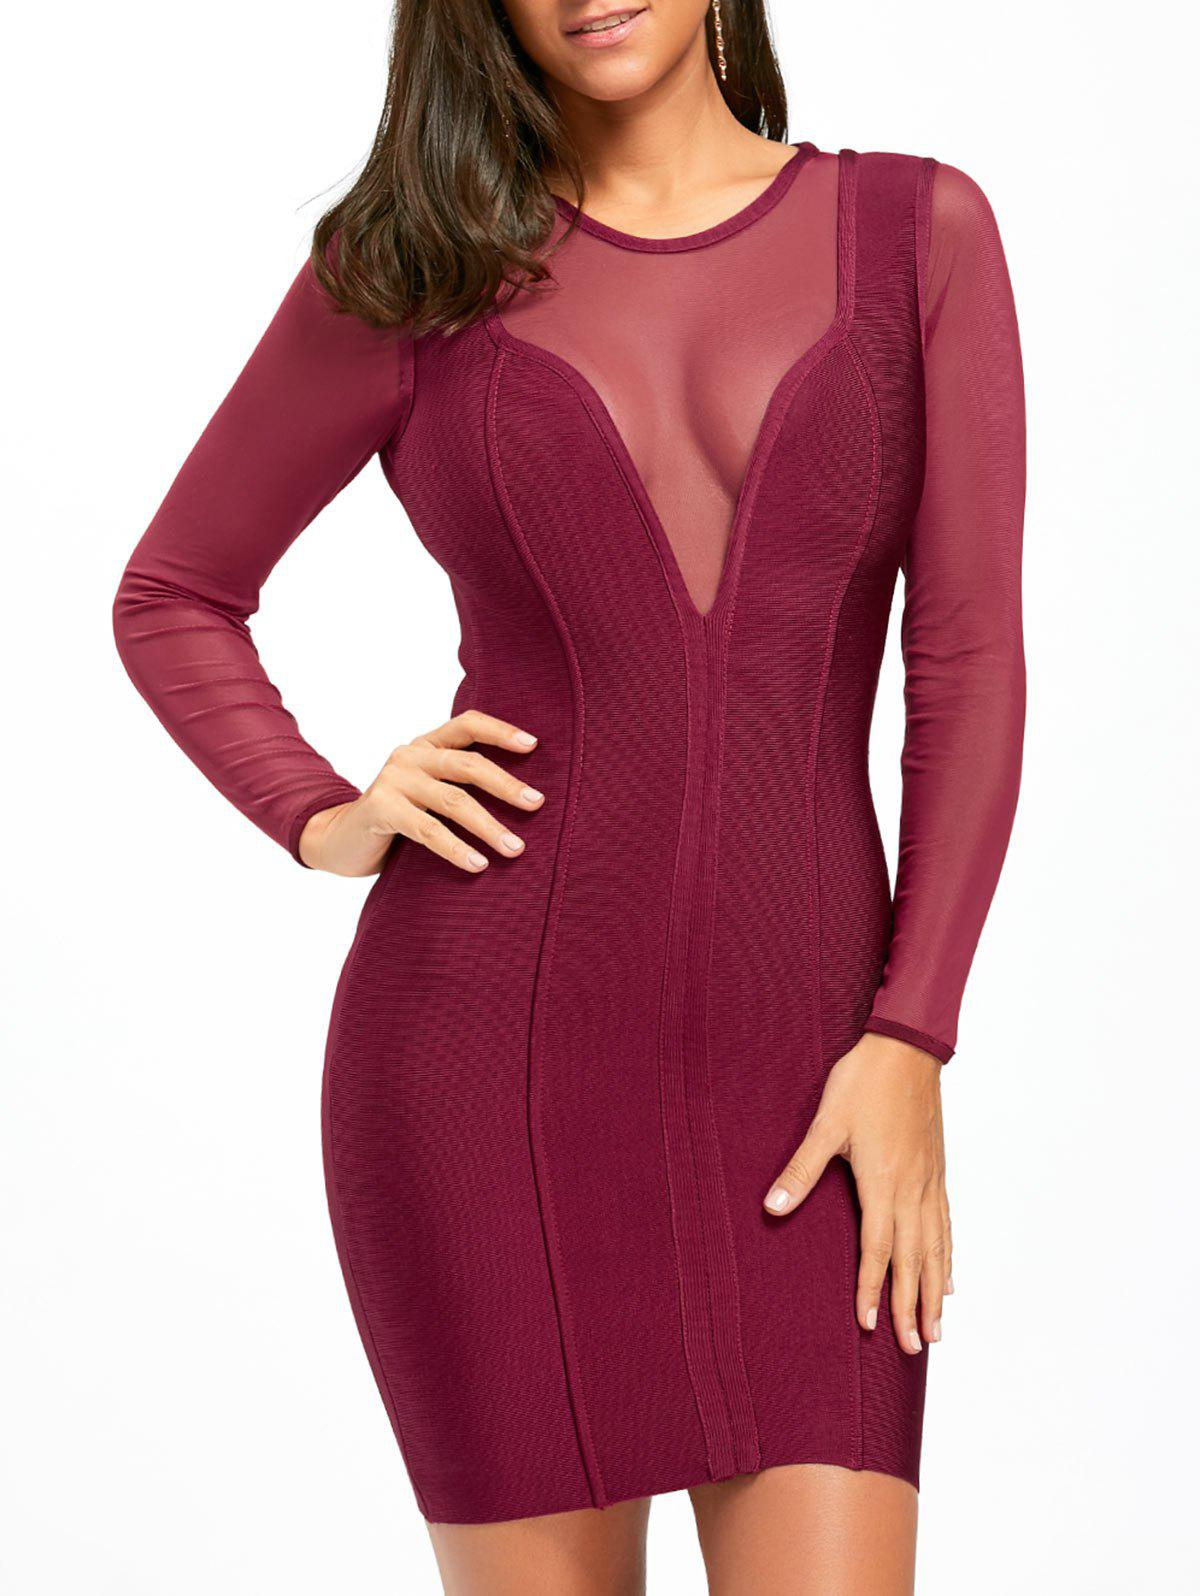 Affordable Mesh Panel Sheer Long Sleeve Bandage Dress